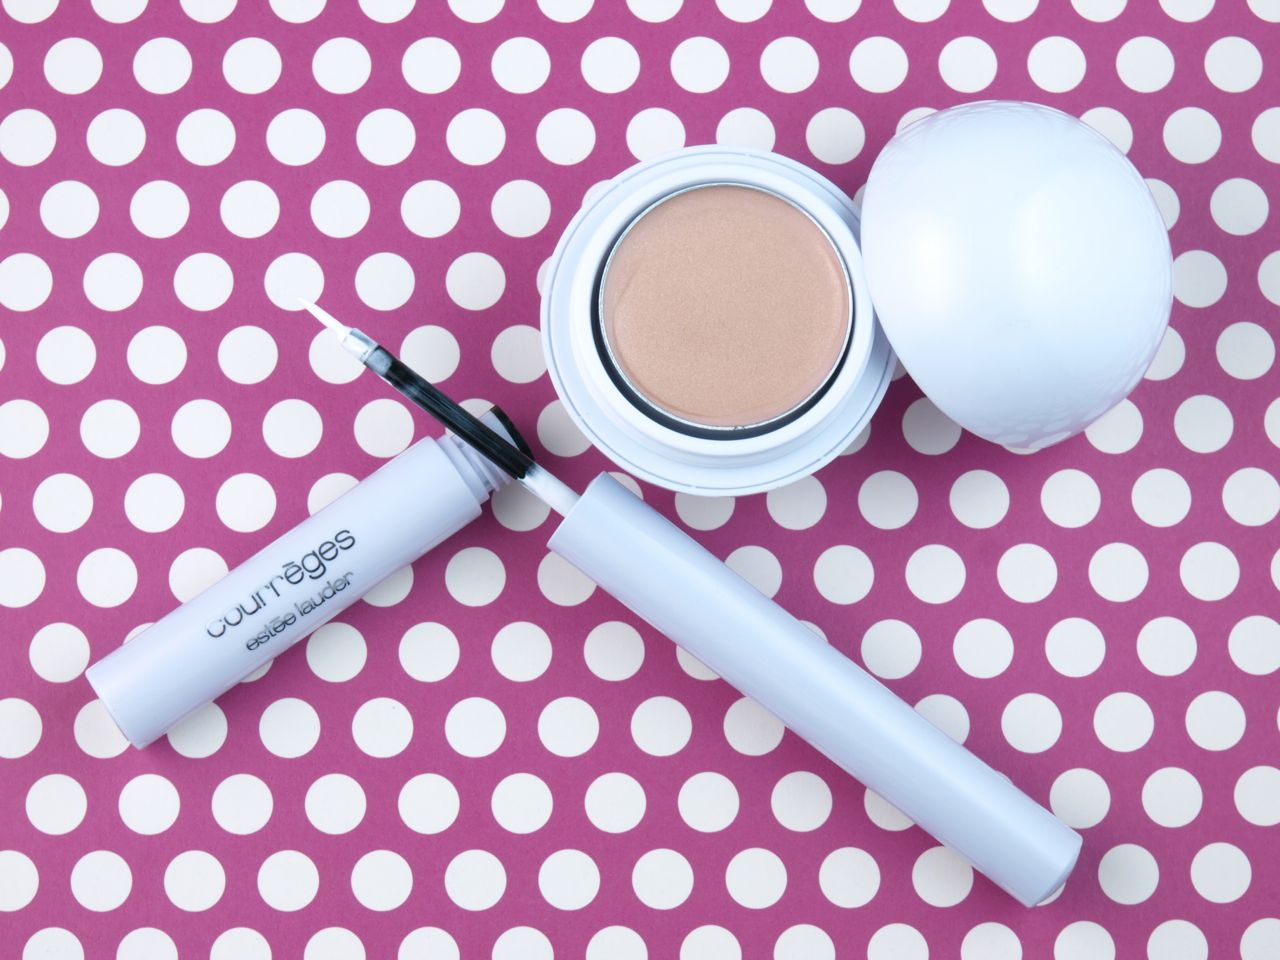 Estee Lauder Courreges Collection Ultra White Eyeliner & Iridescent Ball Highlighter: Review and Swatches